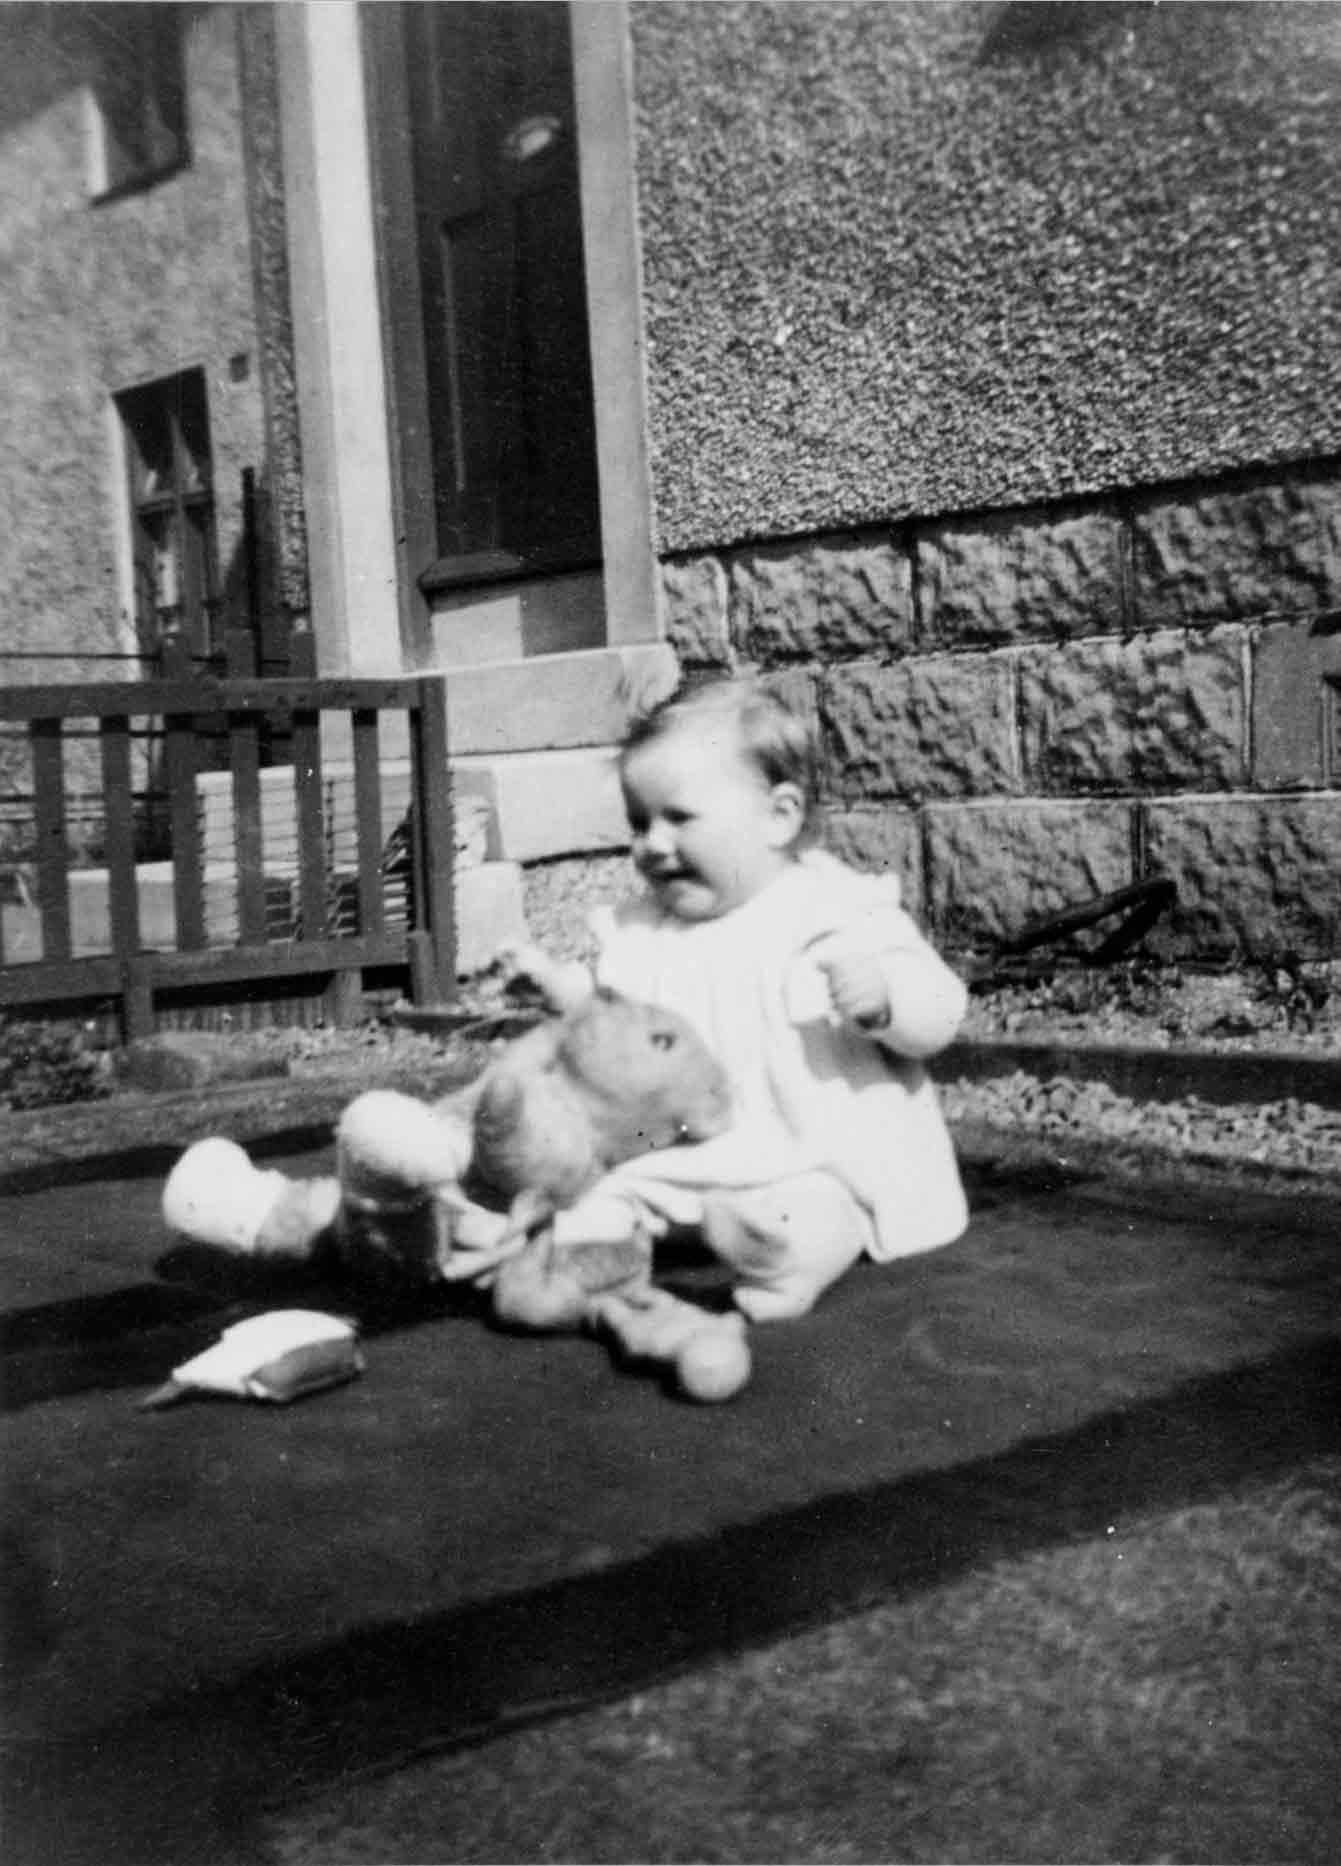 Young Child With Teddy Bear 1948